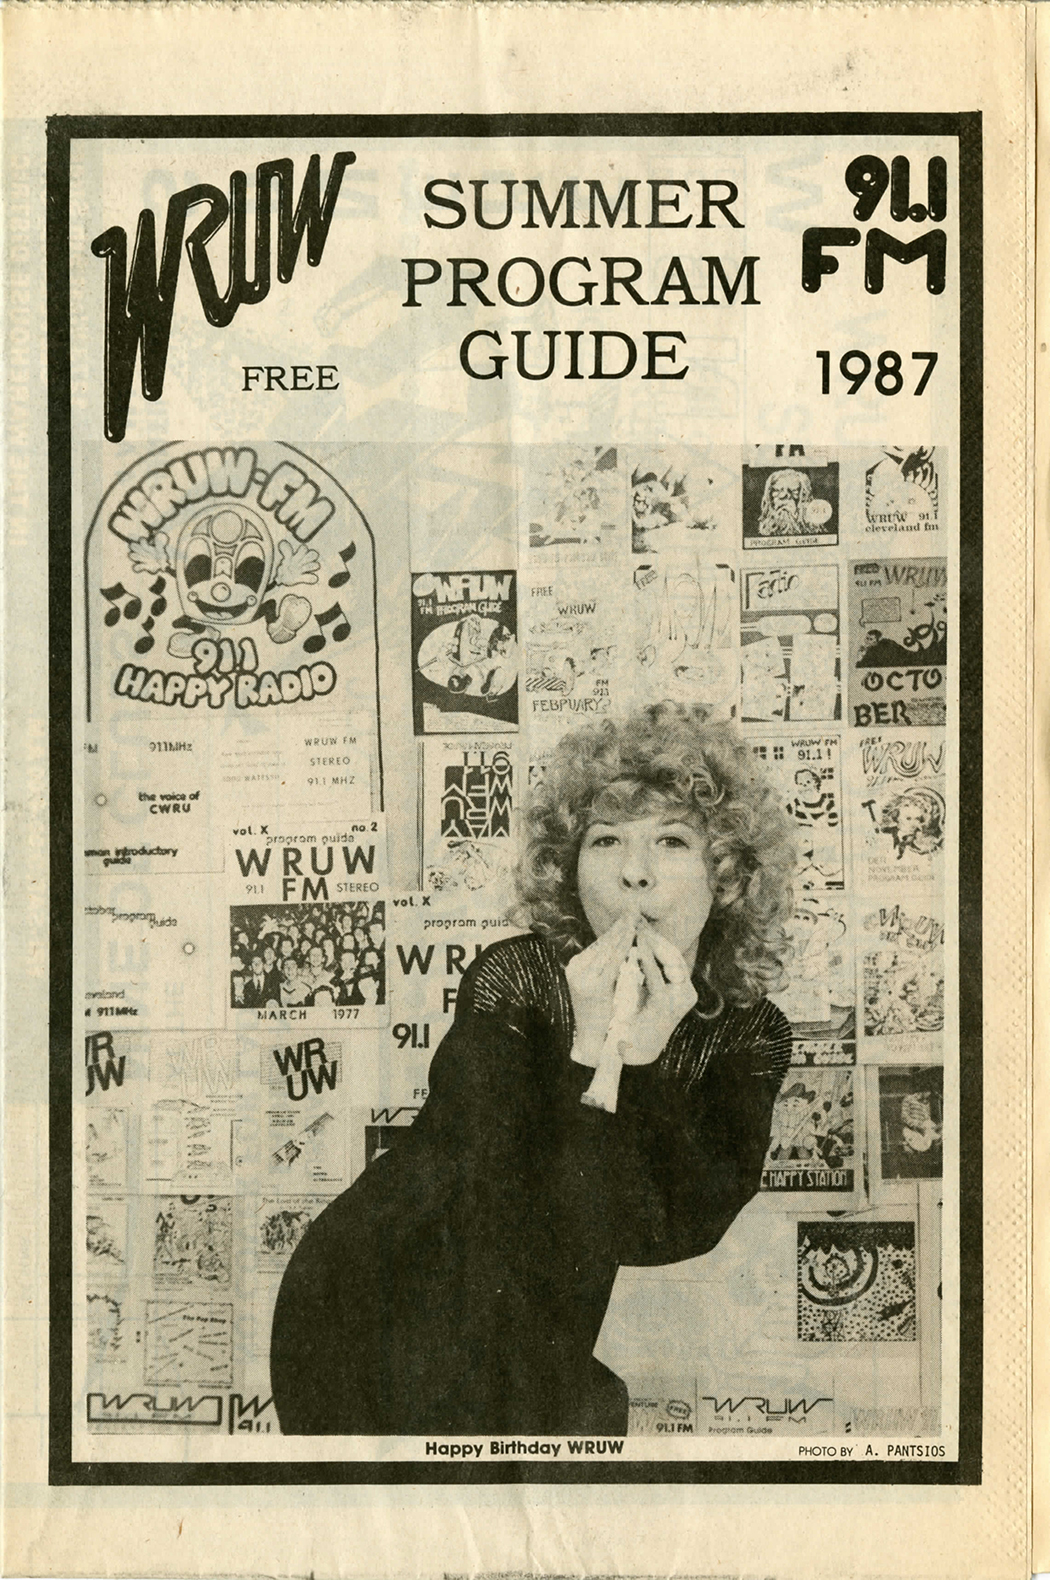 A newsprint cover of WRUW programming guide depicting a woman from 1987.